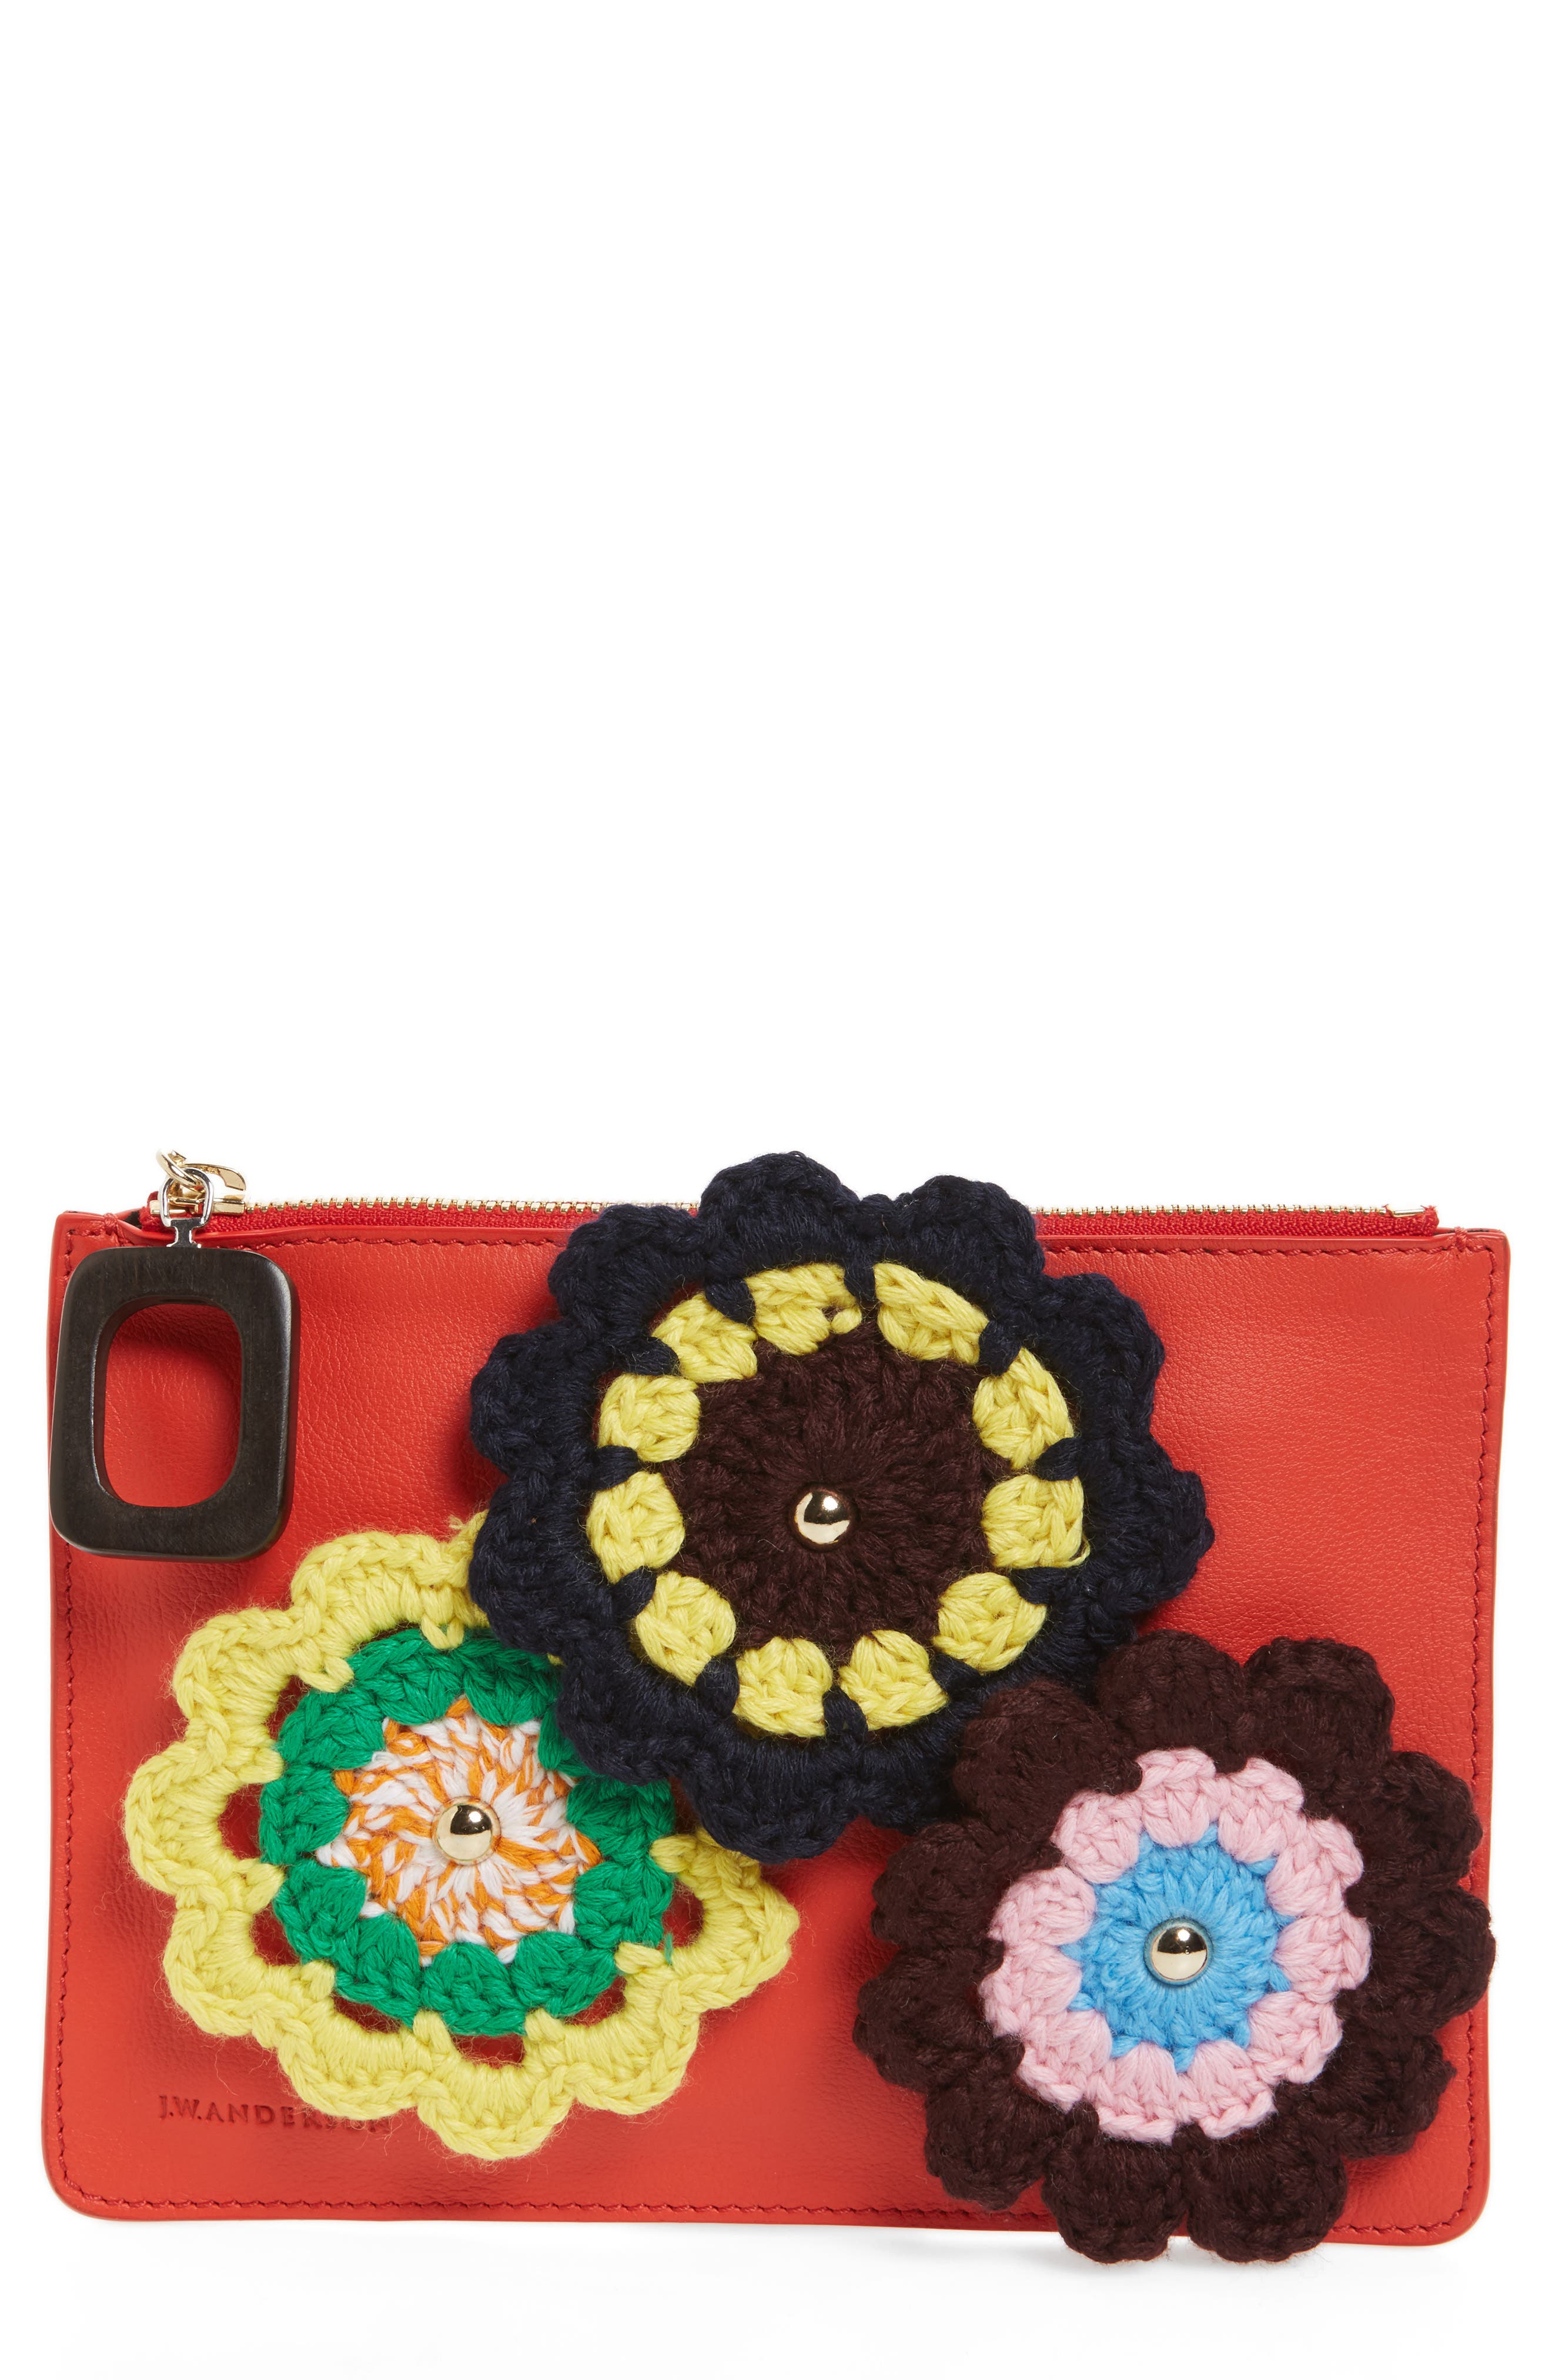 J.W.ANDERSON Daisies Calfskin Leather Pouch,                         Main,                         color, 600